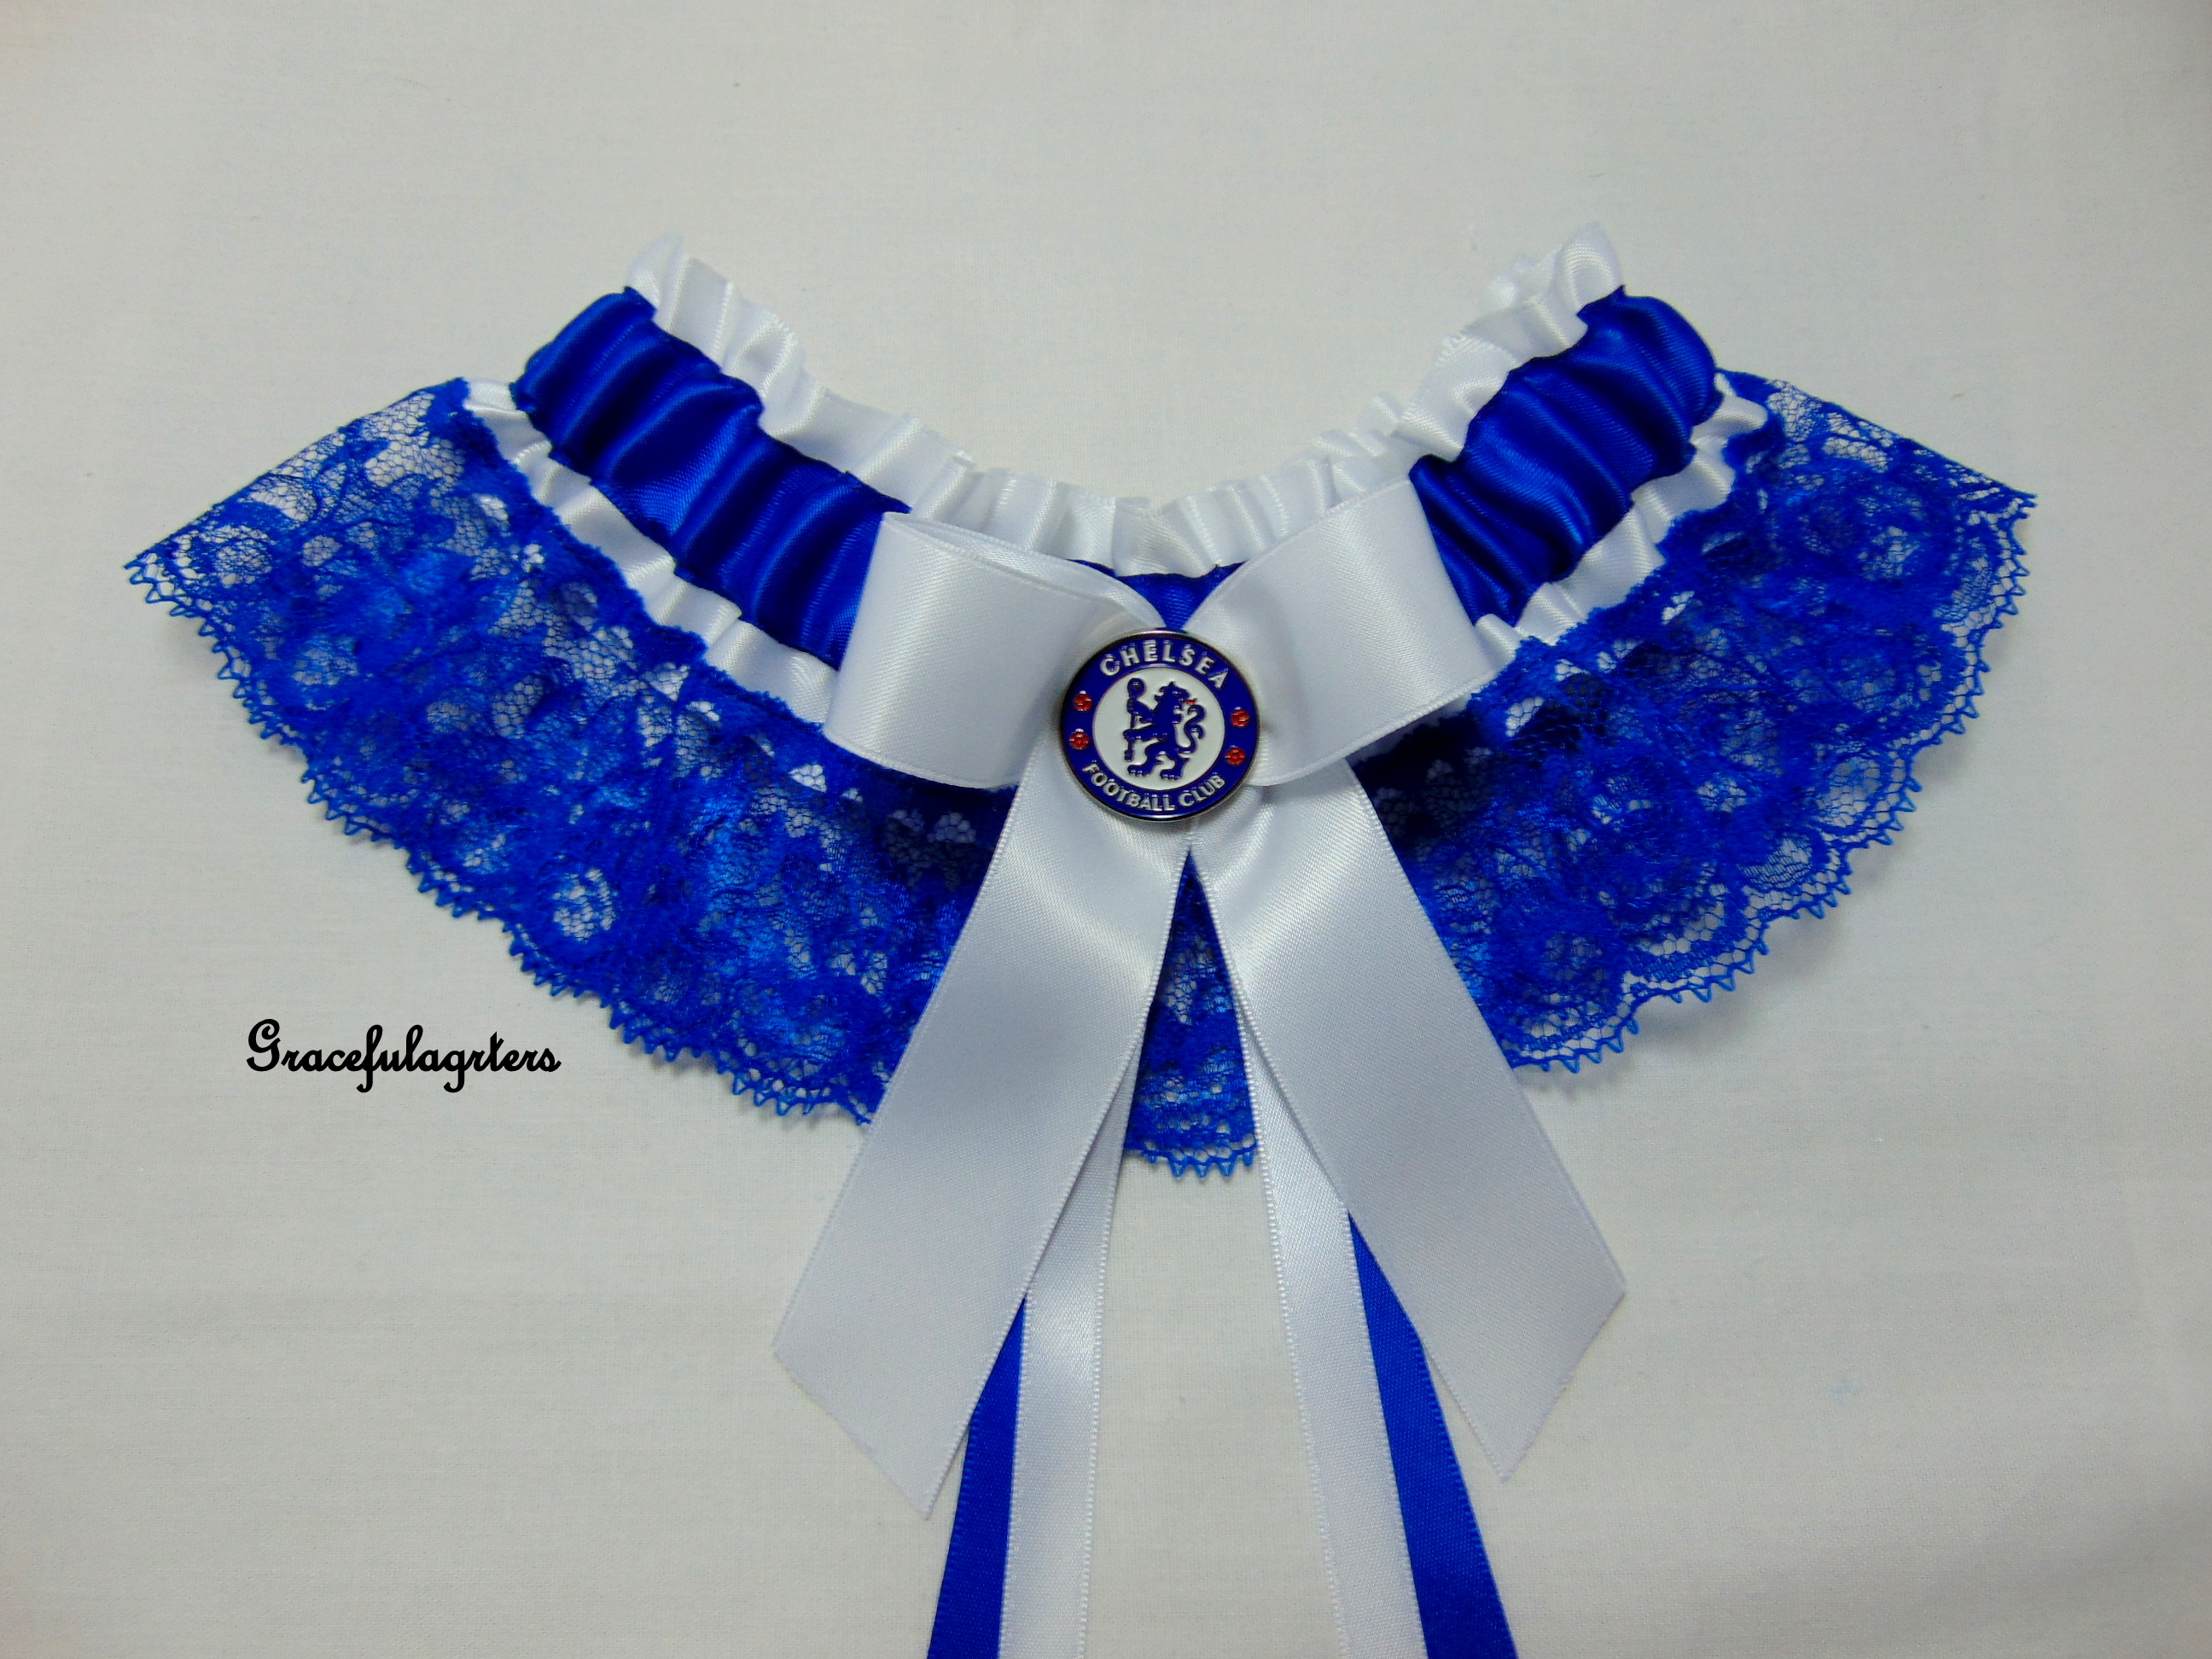 Lace Chelsea football team bridal wedding garter